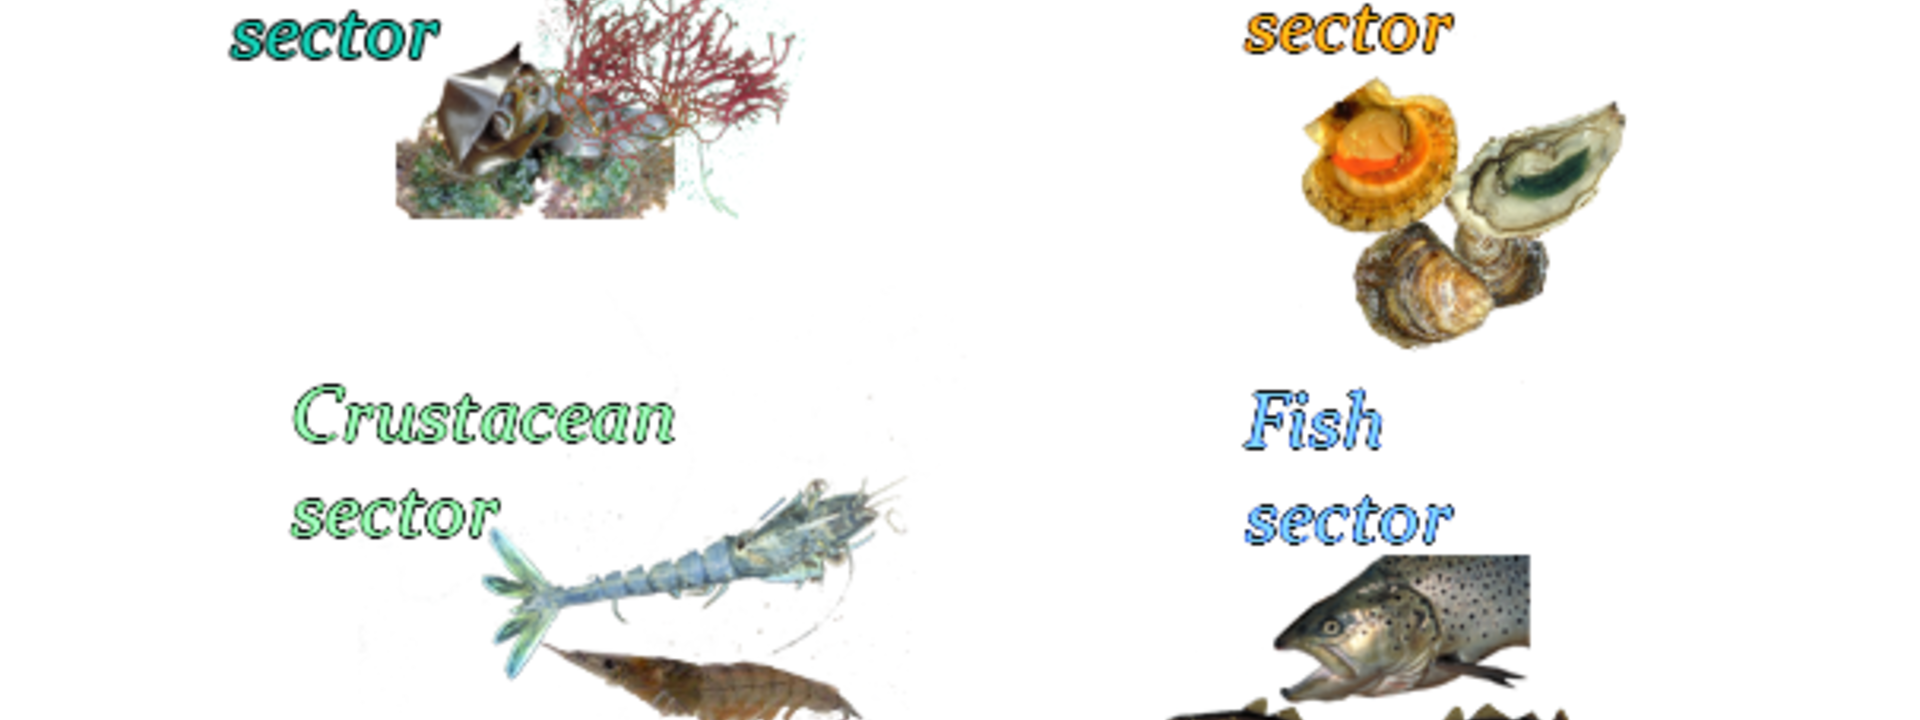 Aquaculture sectors